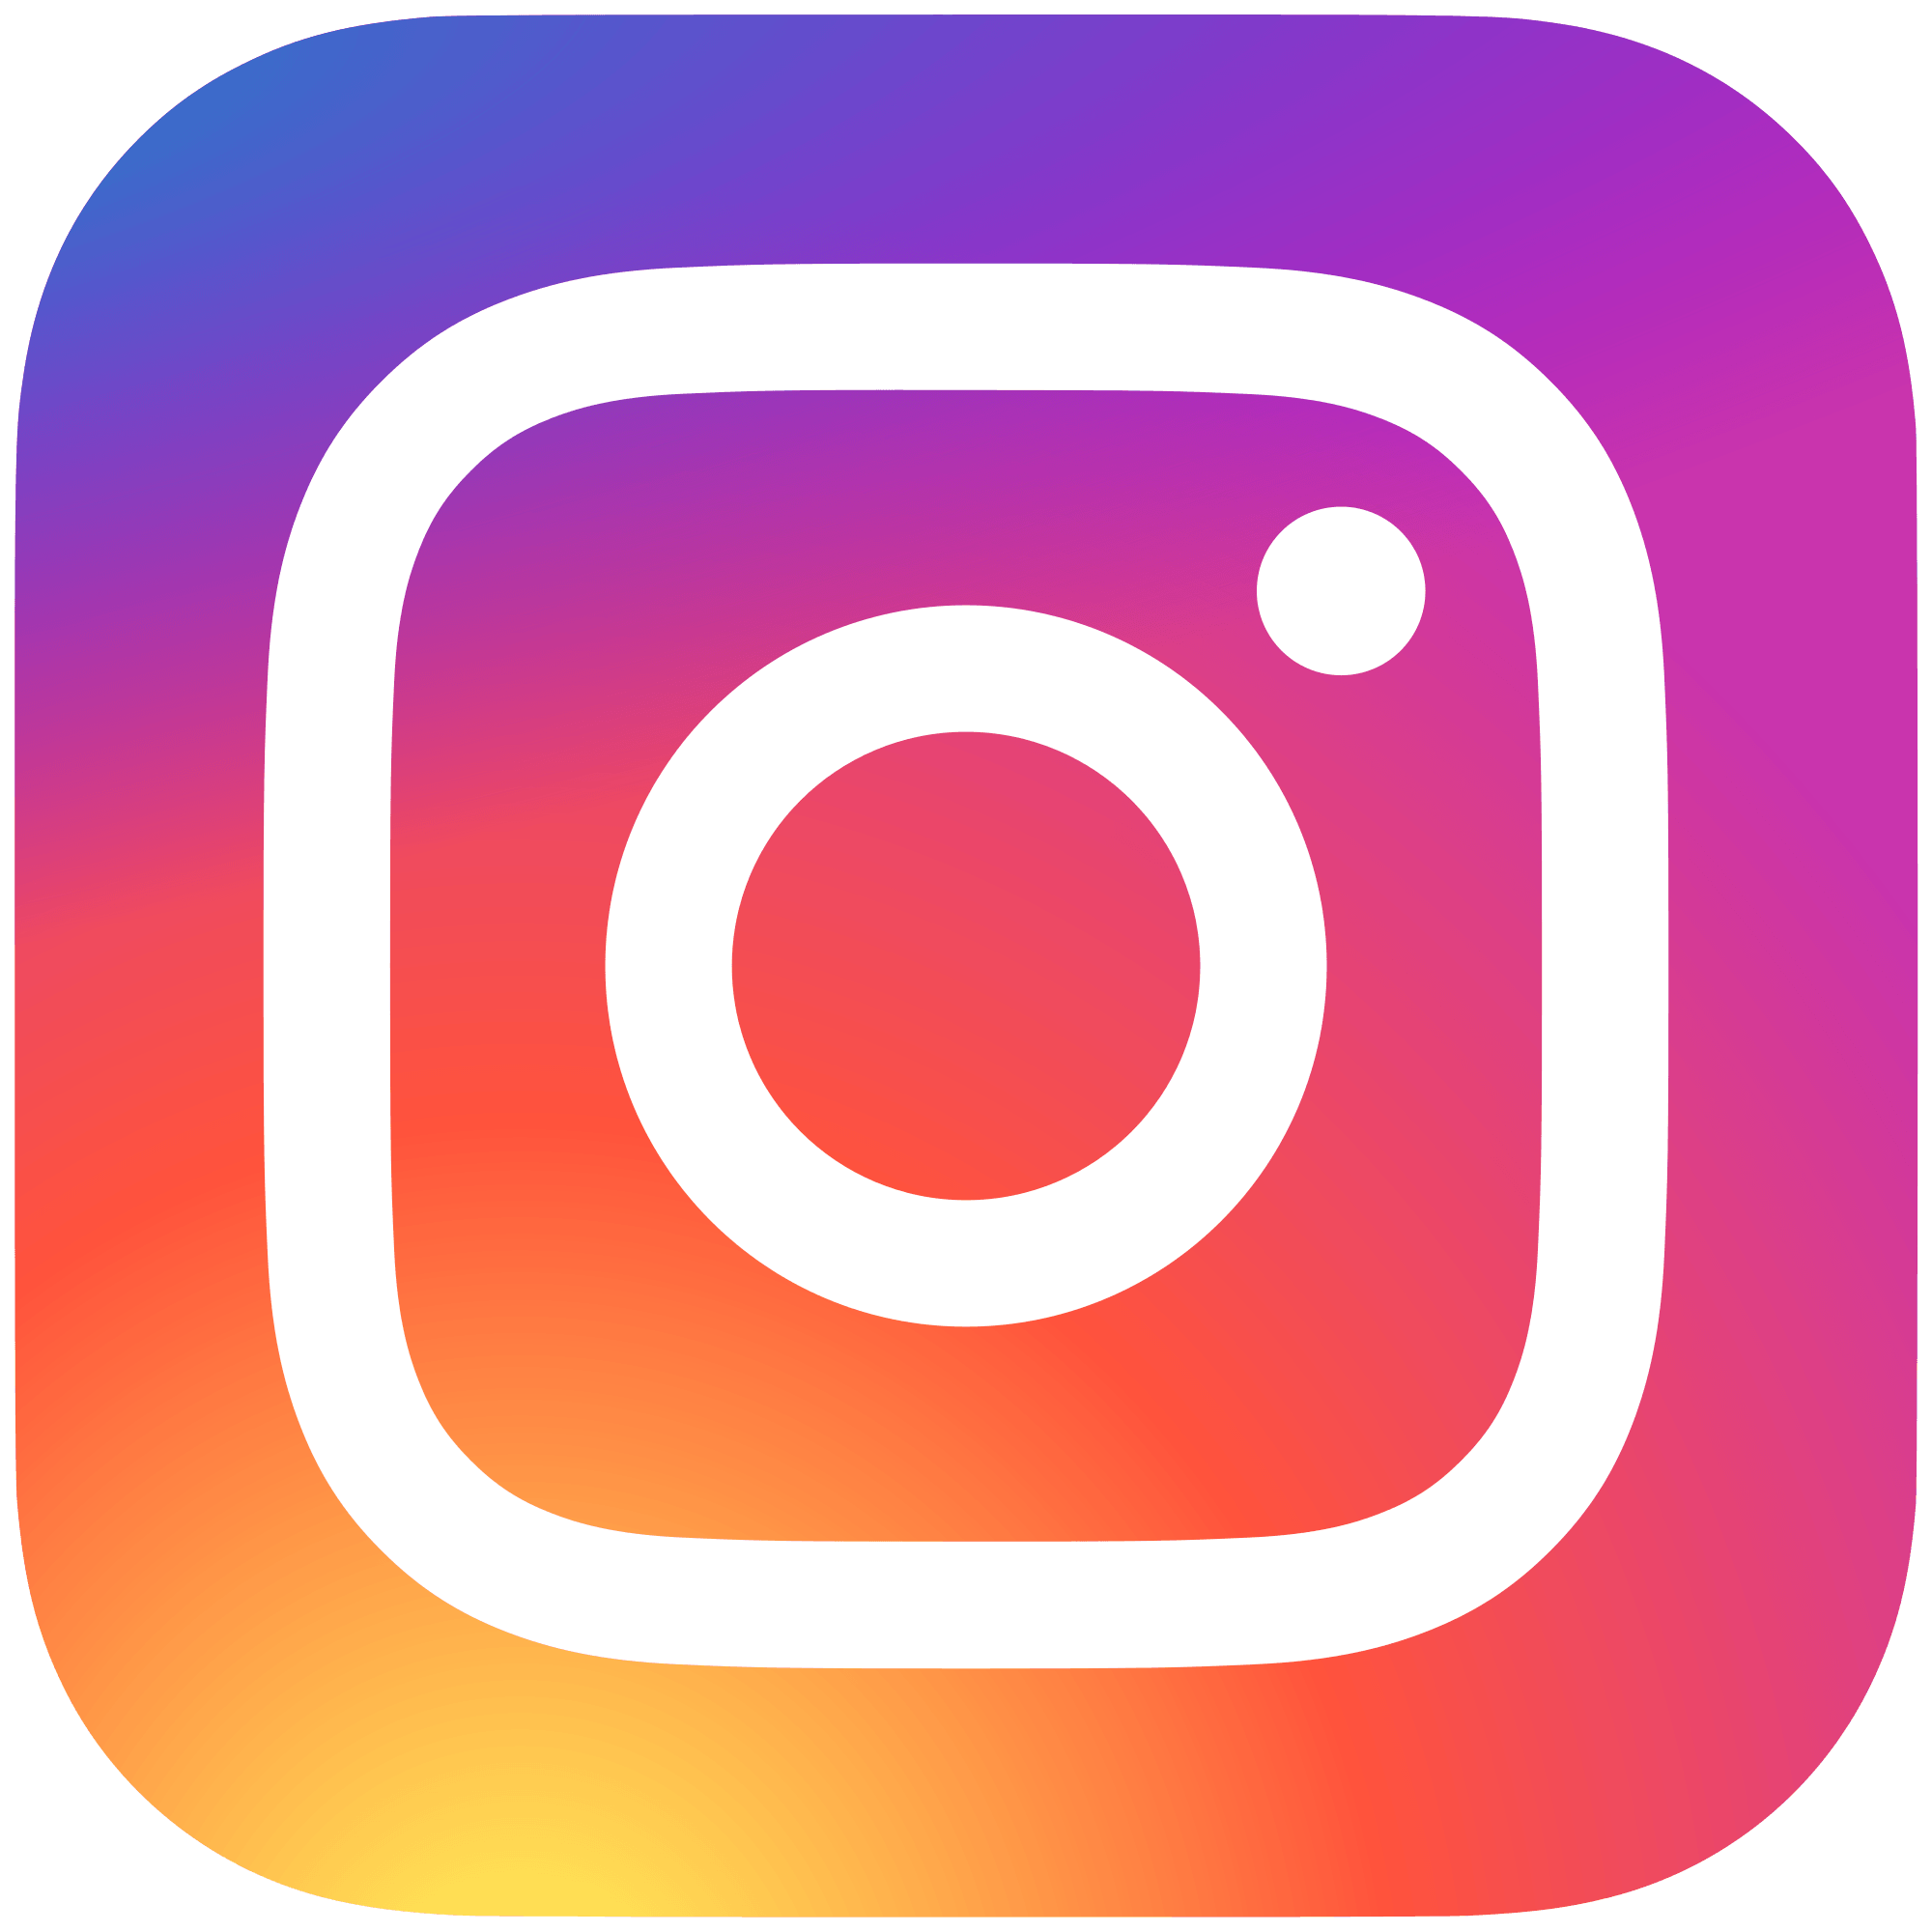 Instagram-Favicon.png